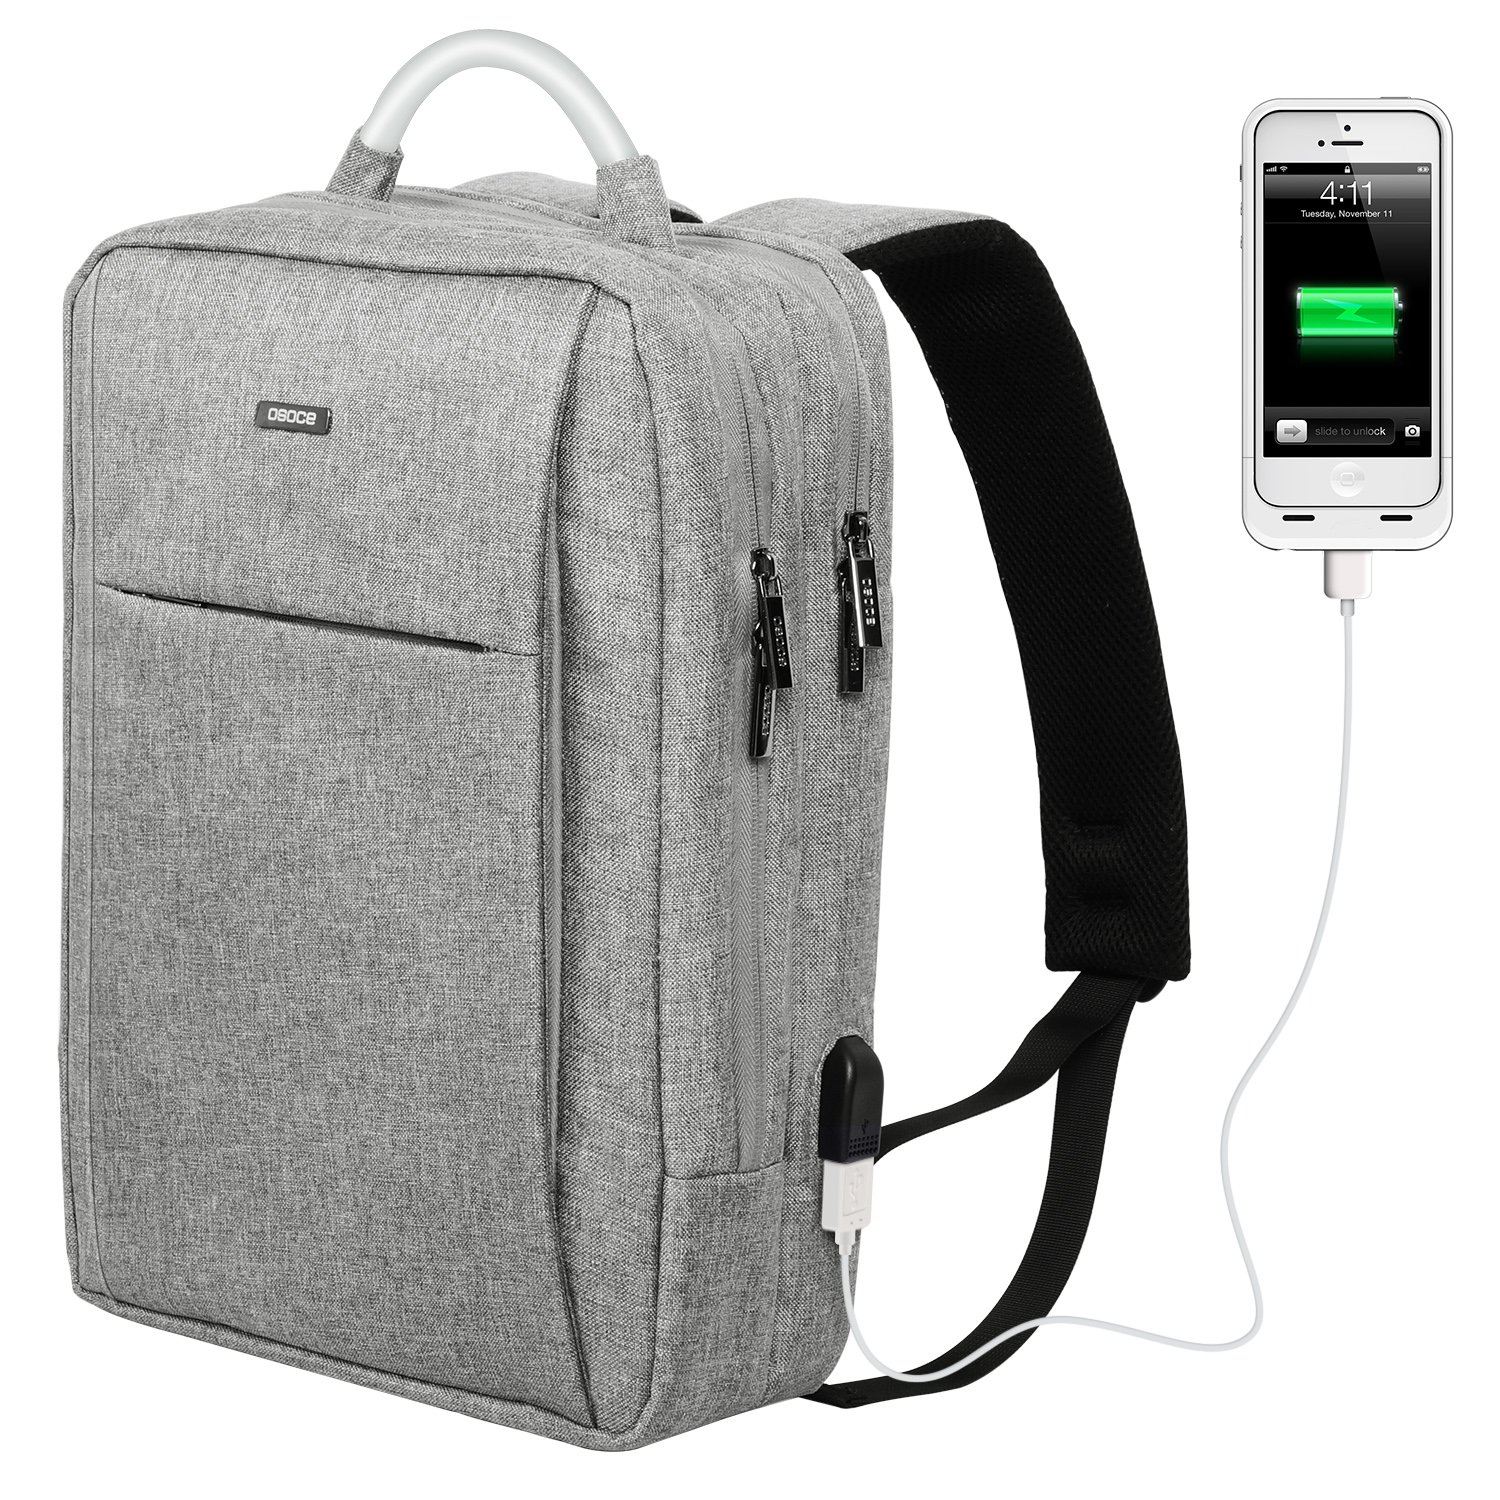 50%OFF OSOCE Slim Laptop Backpack Business Computer Bag with USB Port  Charger Anti Theft 2406d5b0127a7